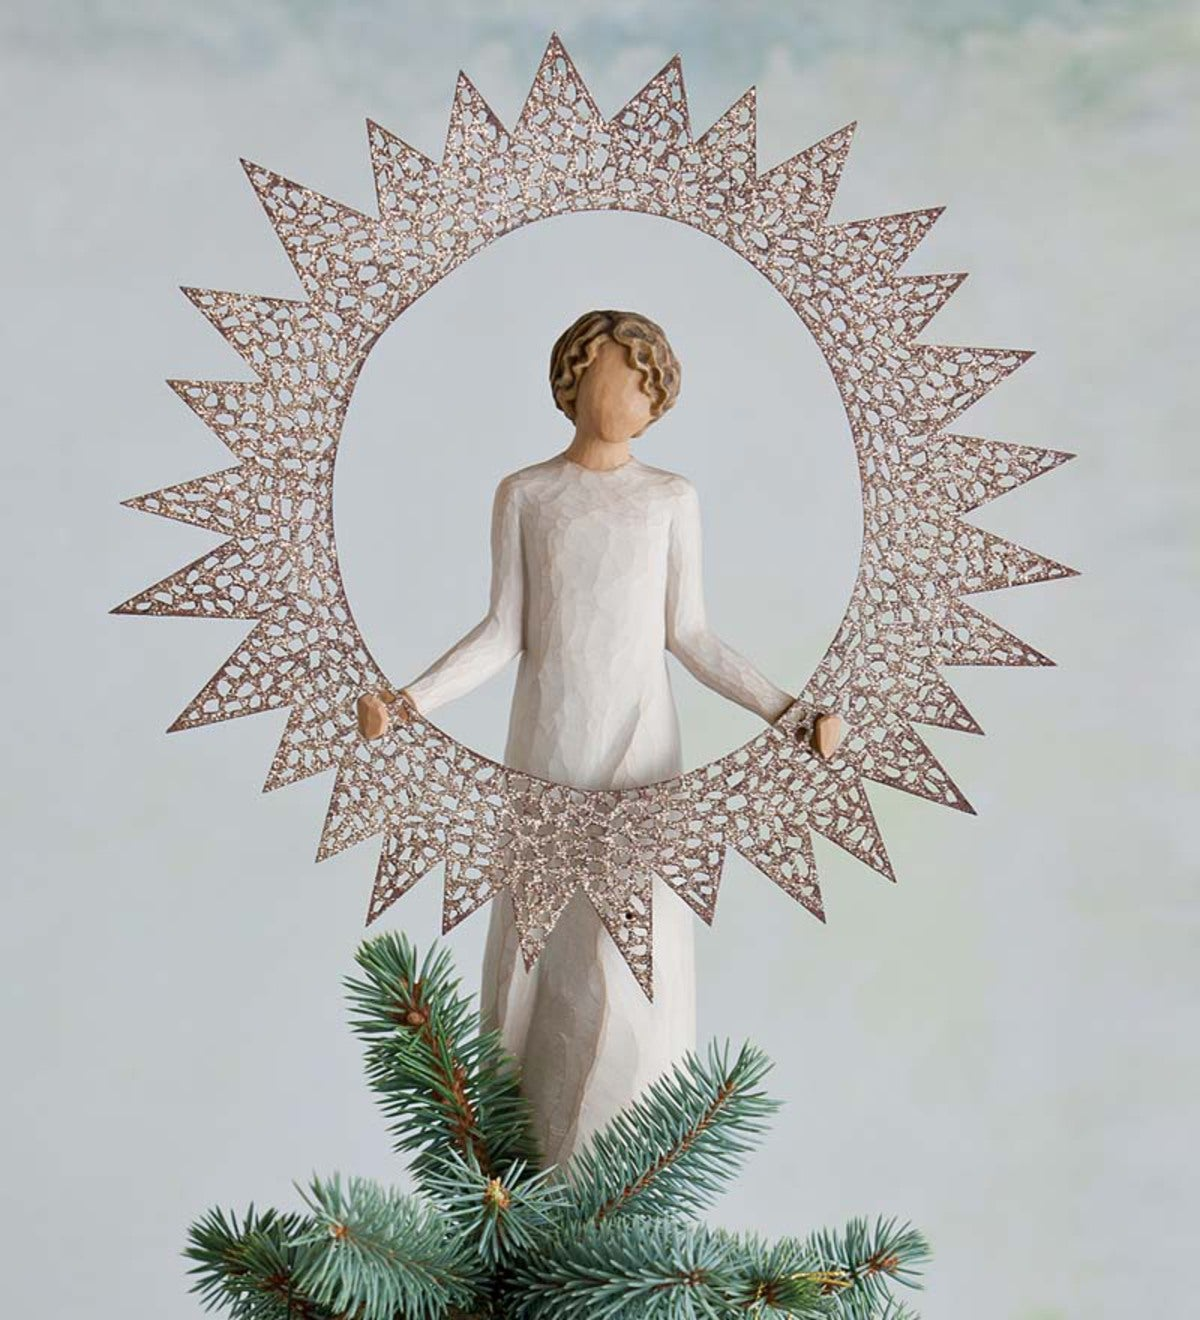 Starlight Willow Tree® Angel Tree Topper Figurine